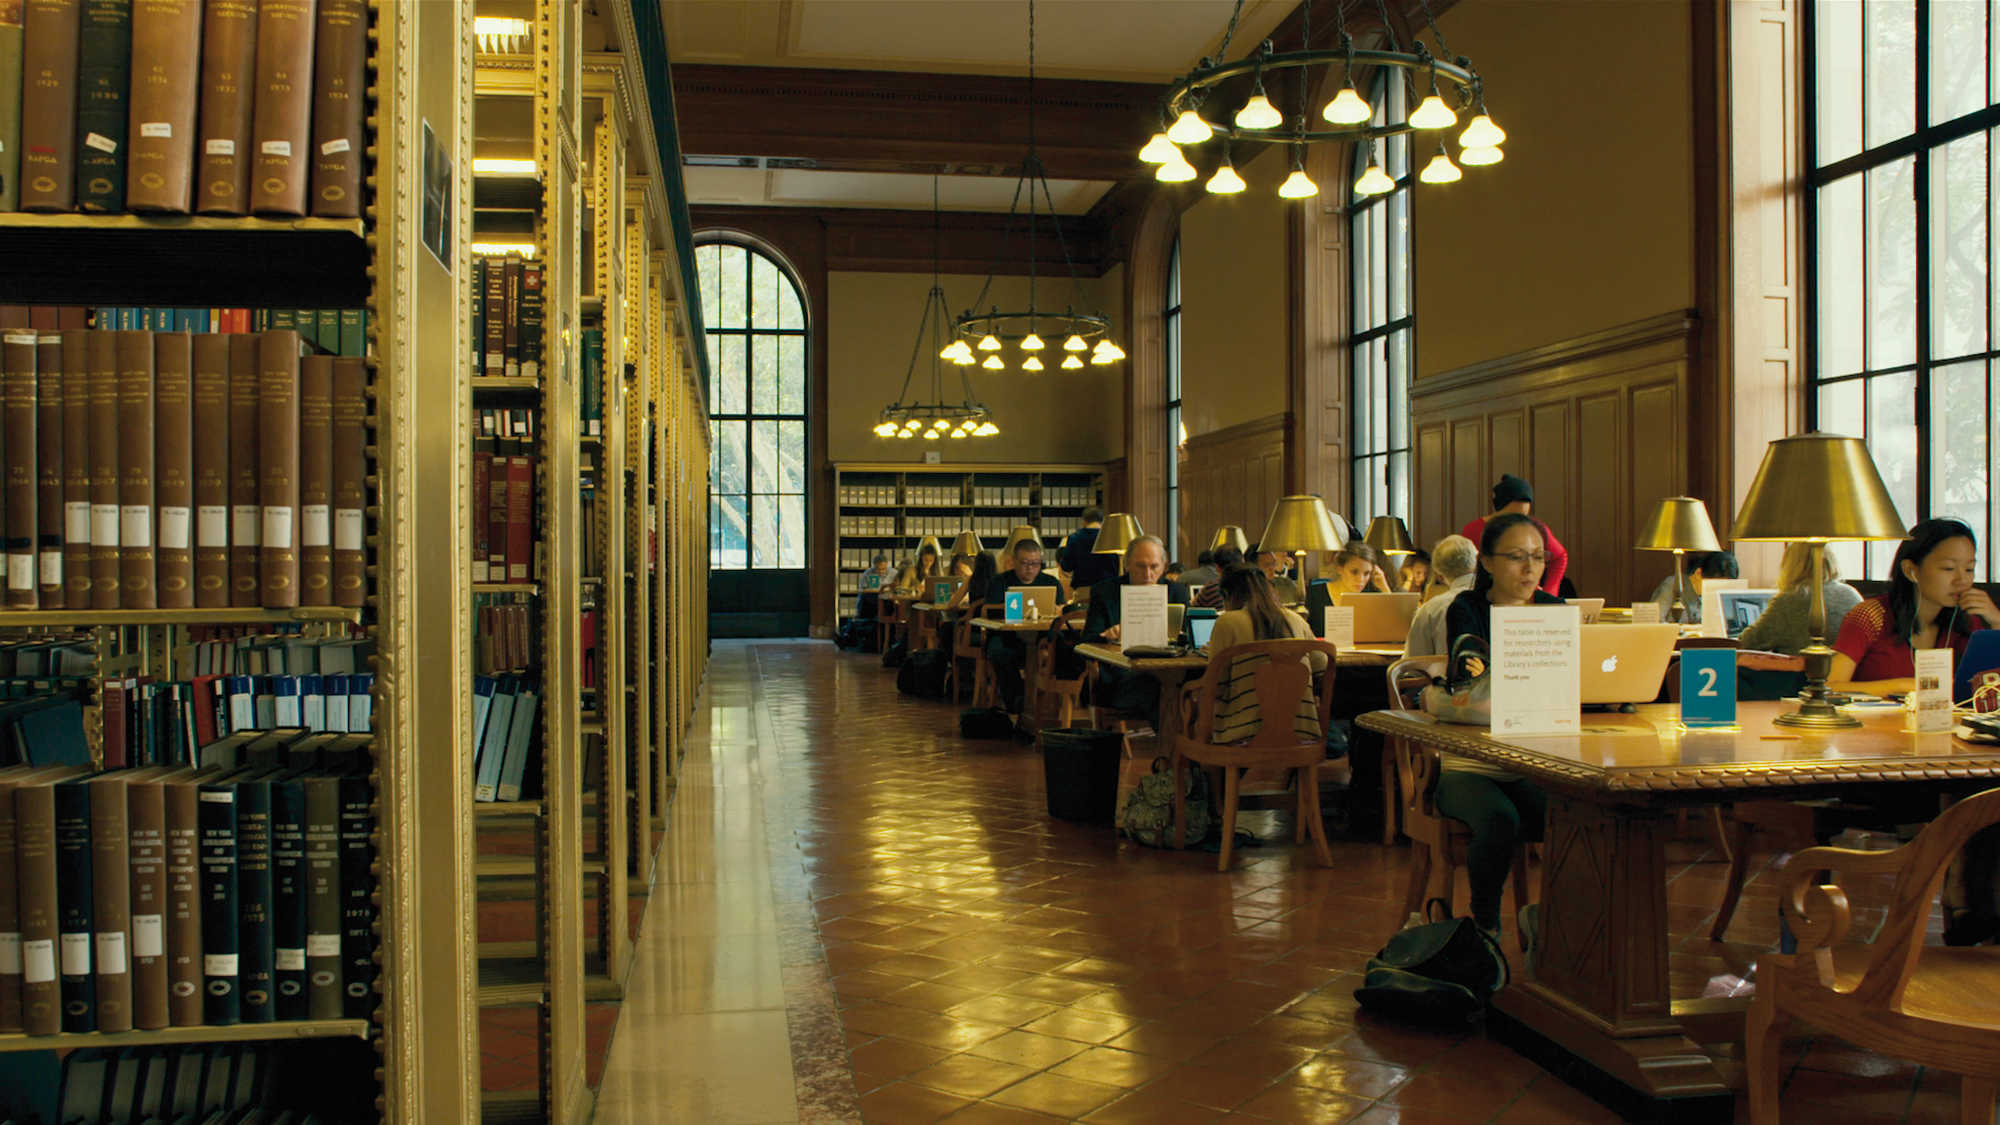 Still from Ex libris: The New York Public Library, 2017